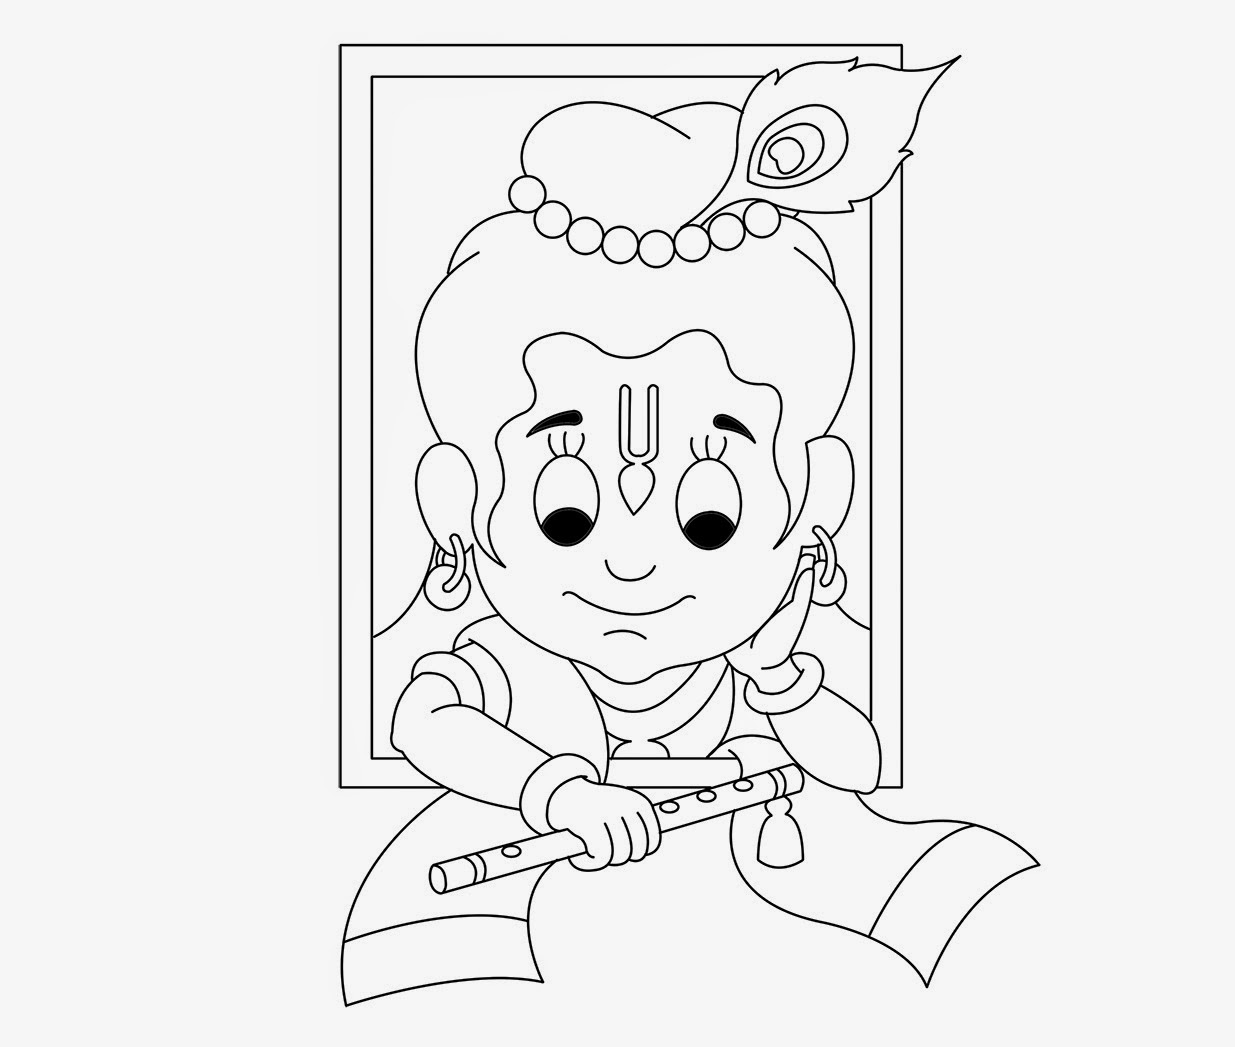 coloring pages of little krishna baby krishna drawing at getdrawings free download pages little krishna coloring of